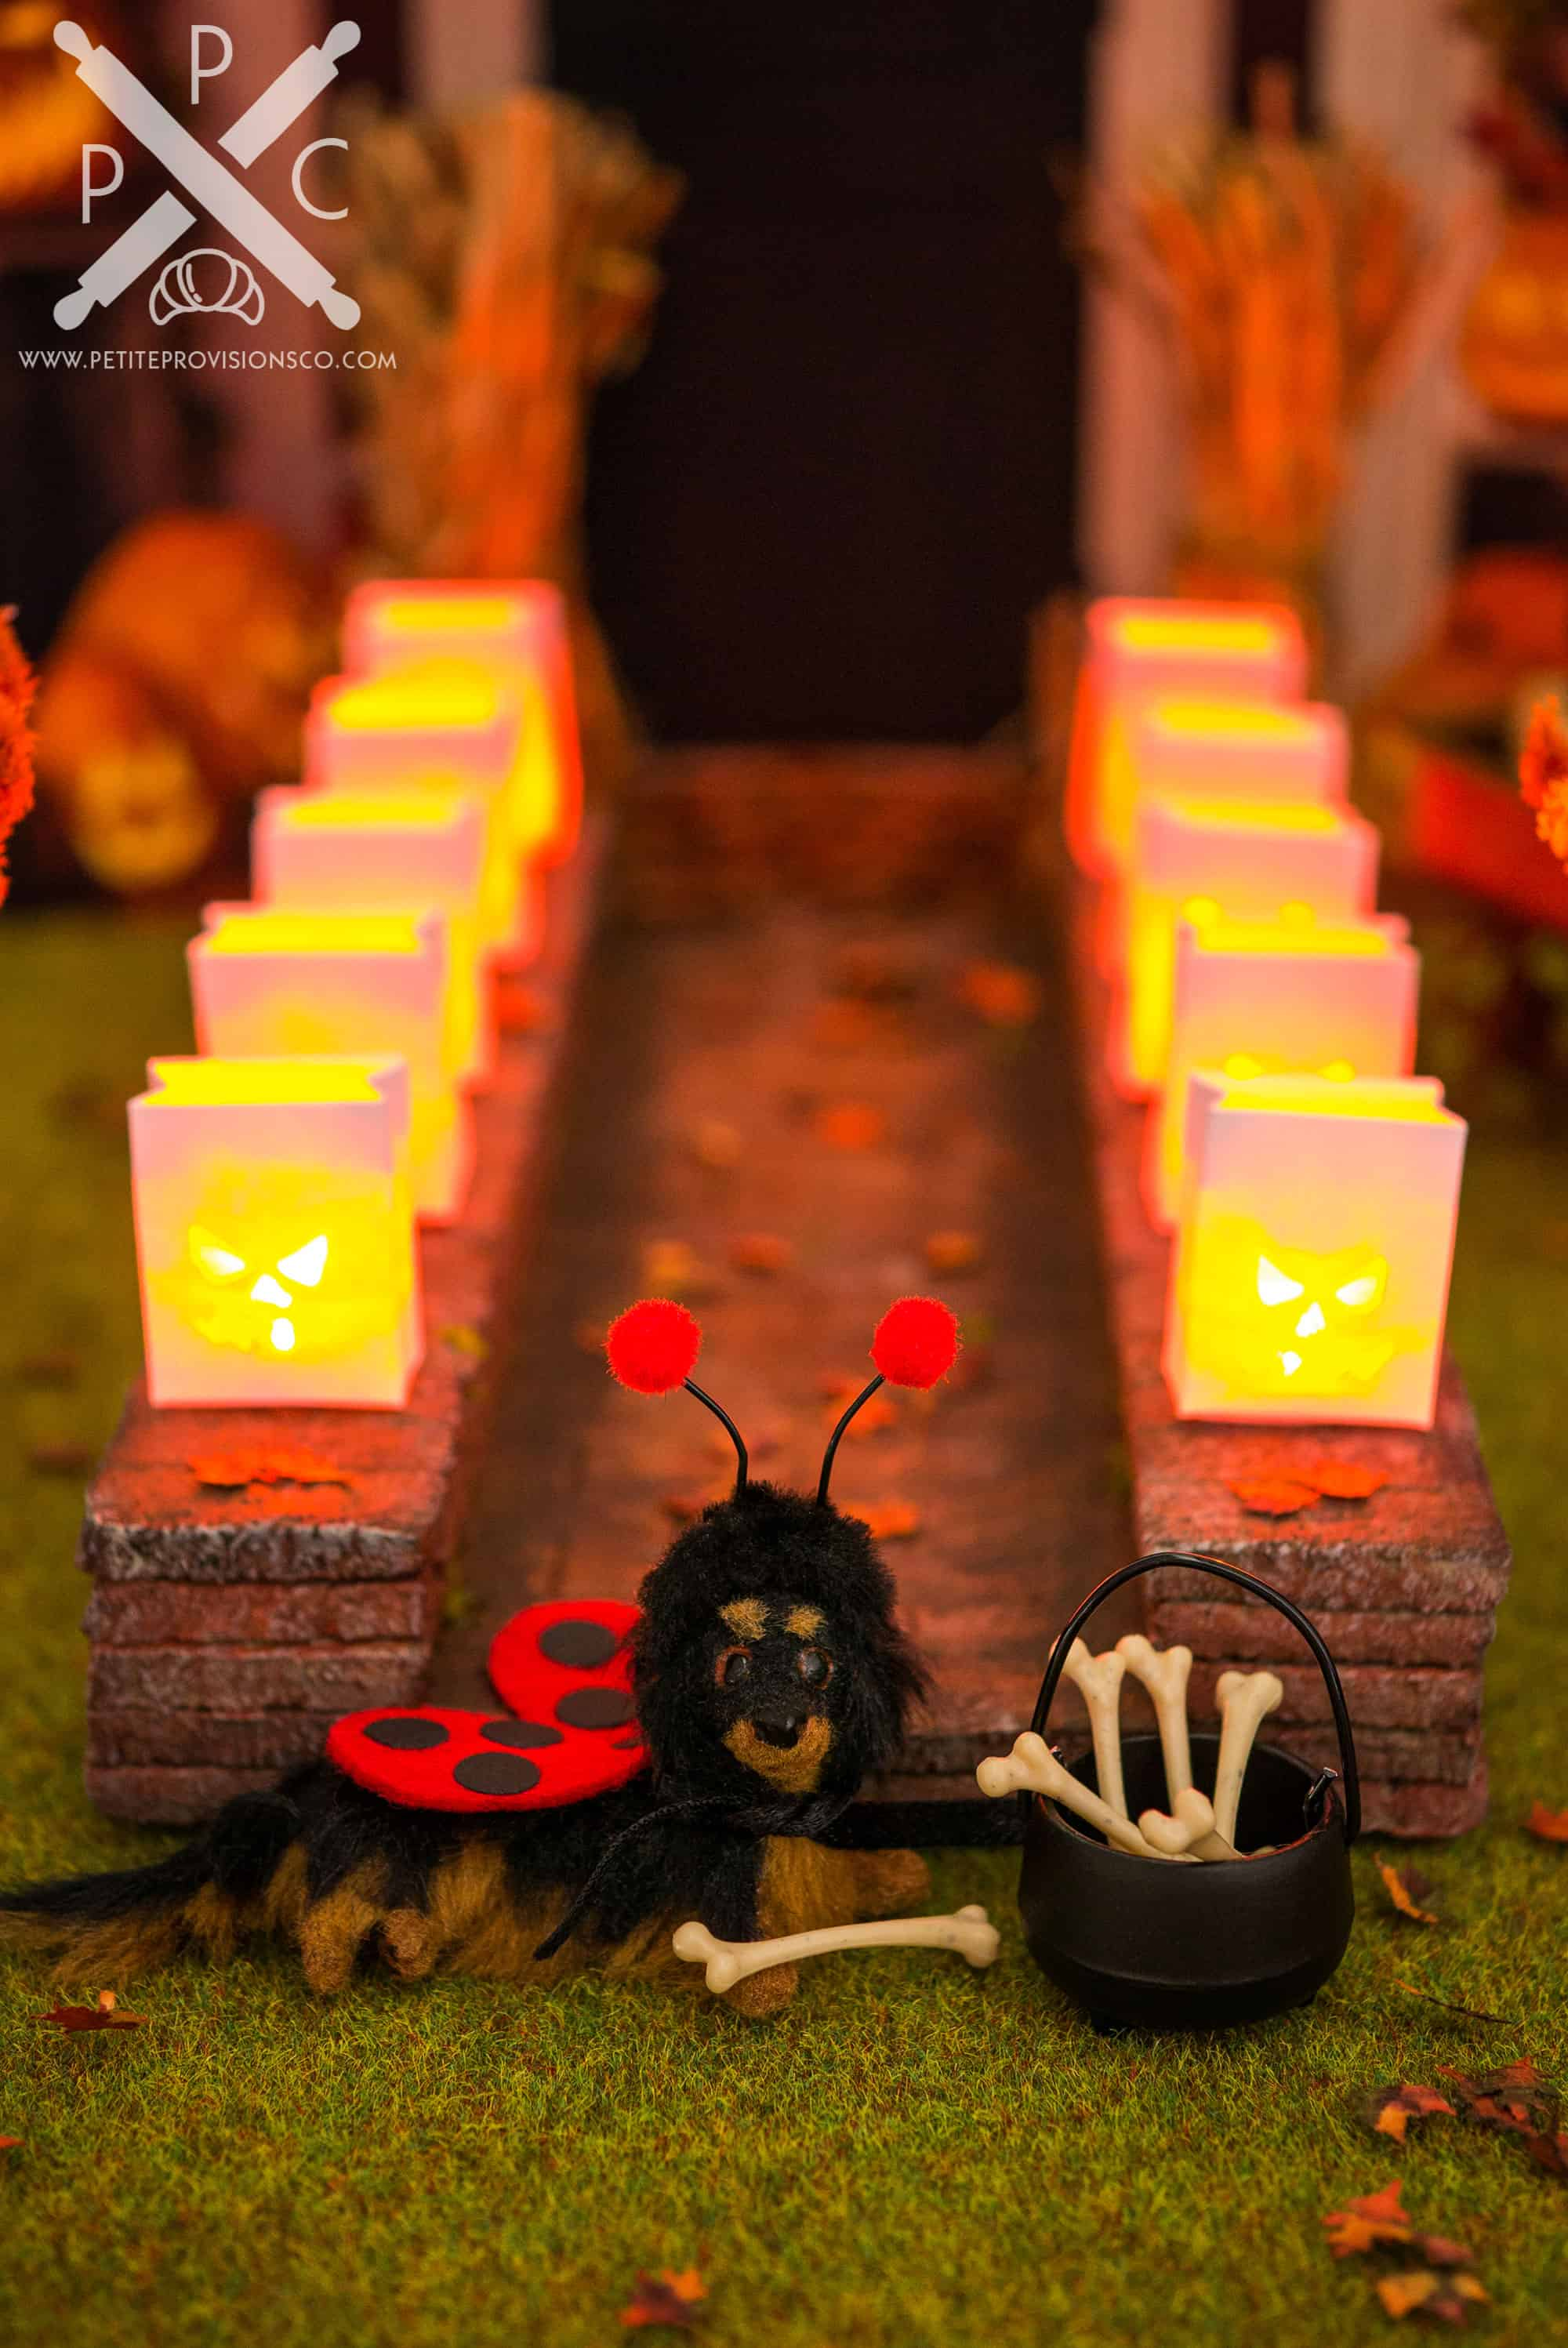 Dollhouse Miniature Halloween Luminarias and Brick Walkway Tutorial by The Petite Provisions Co.